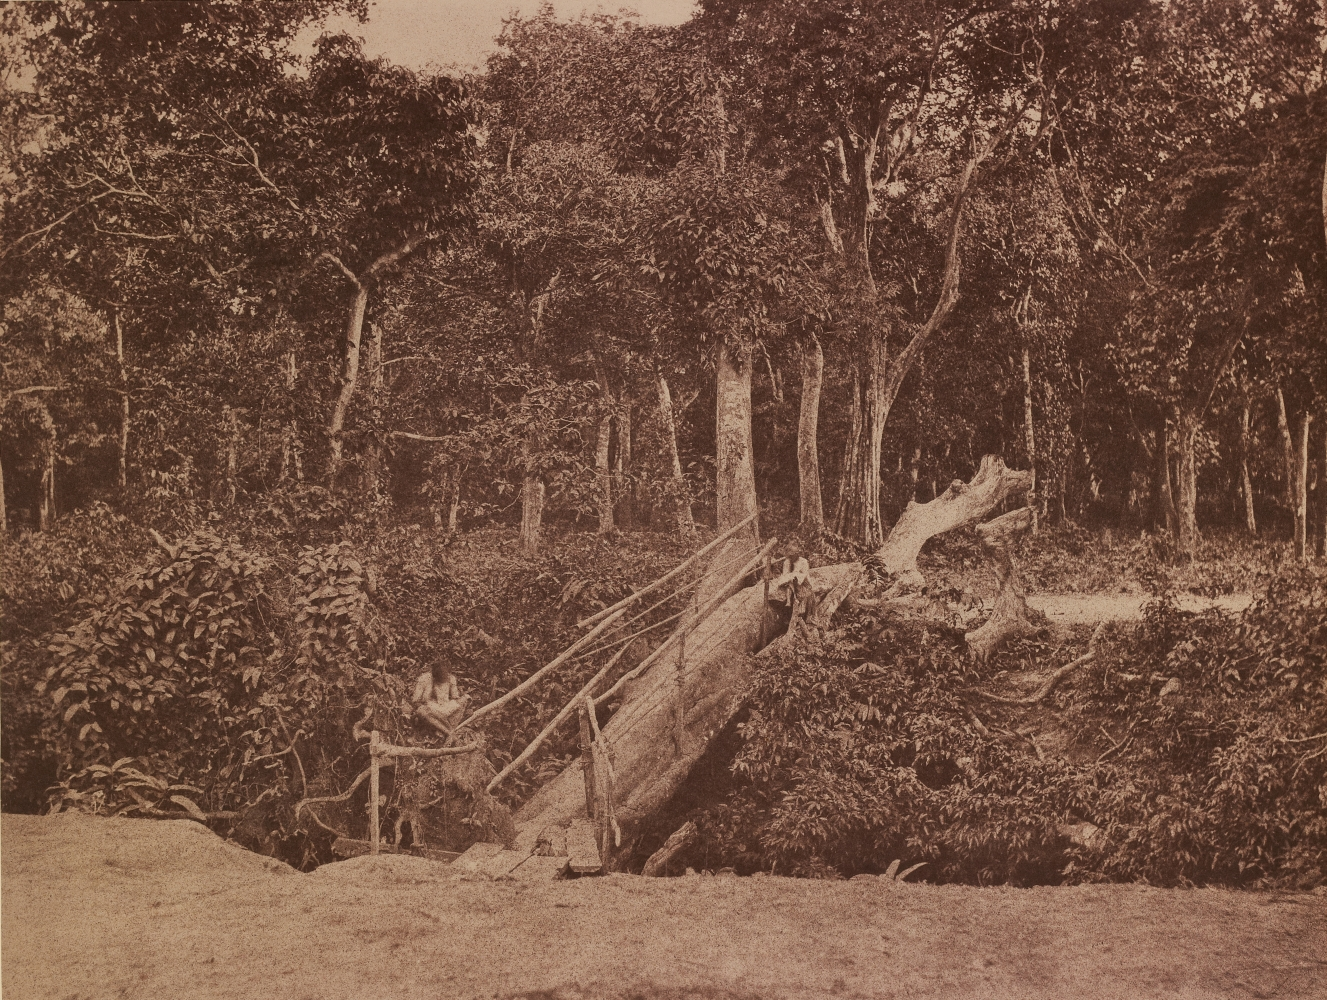 """Captain Linnaeus TRIPE (English, 1822-1902) """"No. 118. Rangoon. Natural Bridge."""" Burma, 1855 Albumenized salt print from a waxed paper negative 25.2 x 33.3 cm mounted on 45.6 x 58.3 cm paper Signed """"L. Tripe"""" in ink. Photographer's blindstamp and printed label with plate number, title and """"A fallen tree over Tiger Alley near the American Mission at Kemindine."""" on mount."""